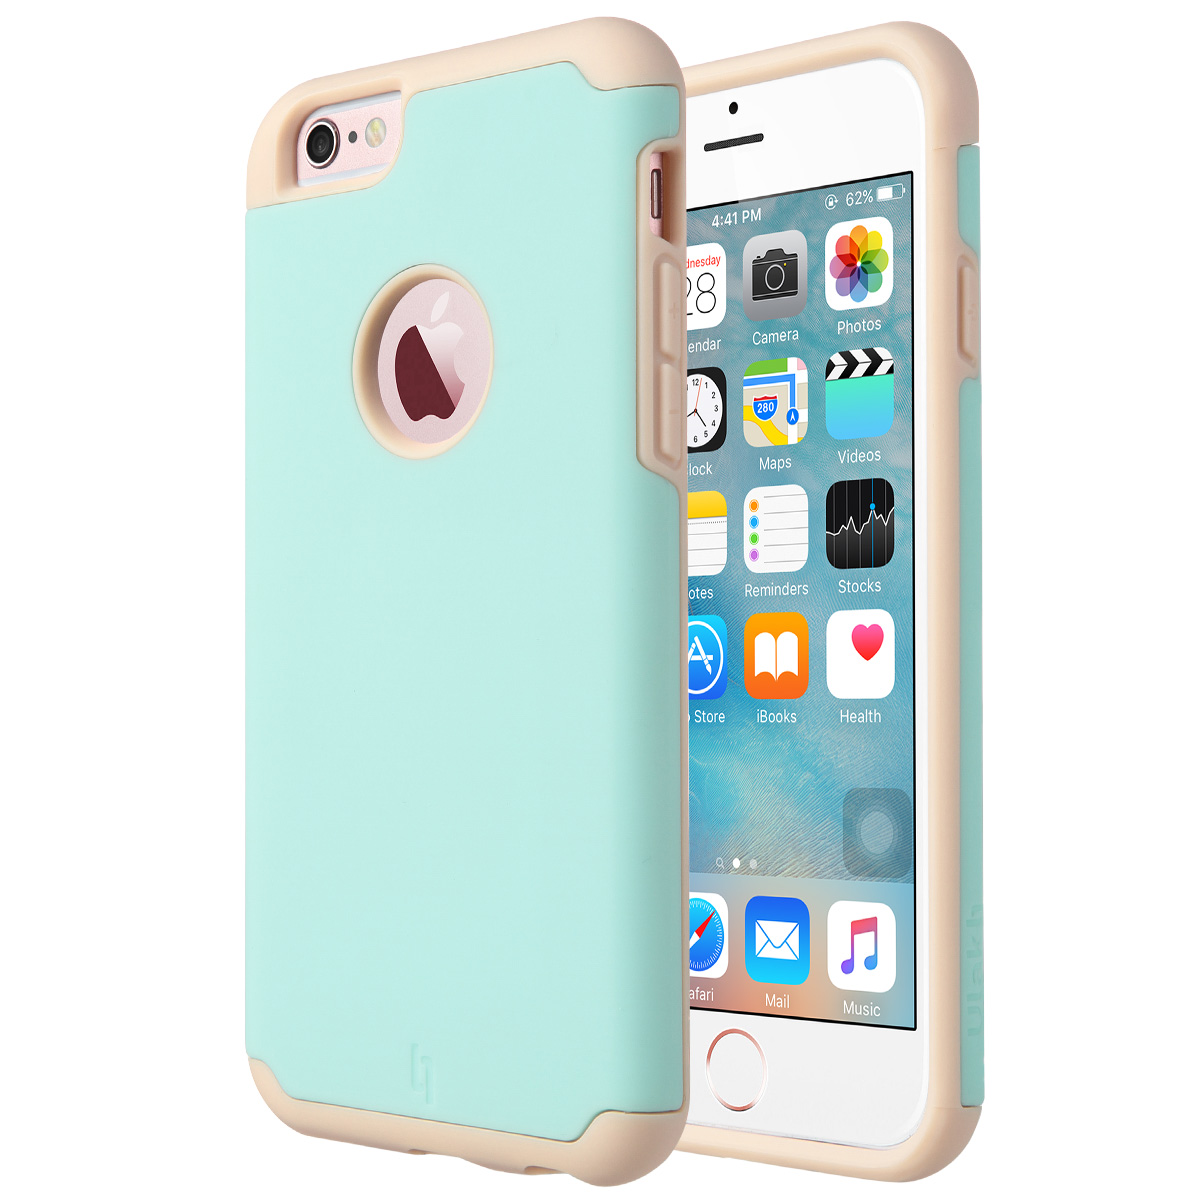 ULAK Shock Absorbent Protective Hybrid PC & Silicone Case Cover for Apple iPhone 6s / 6